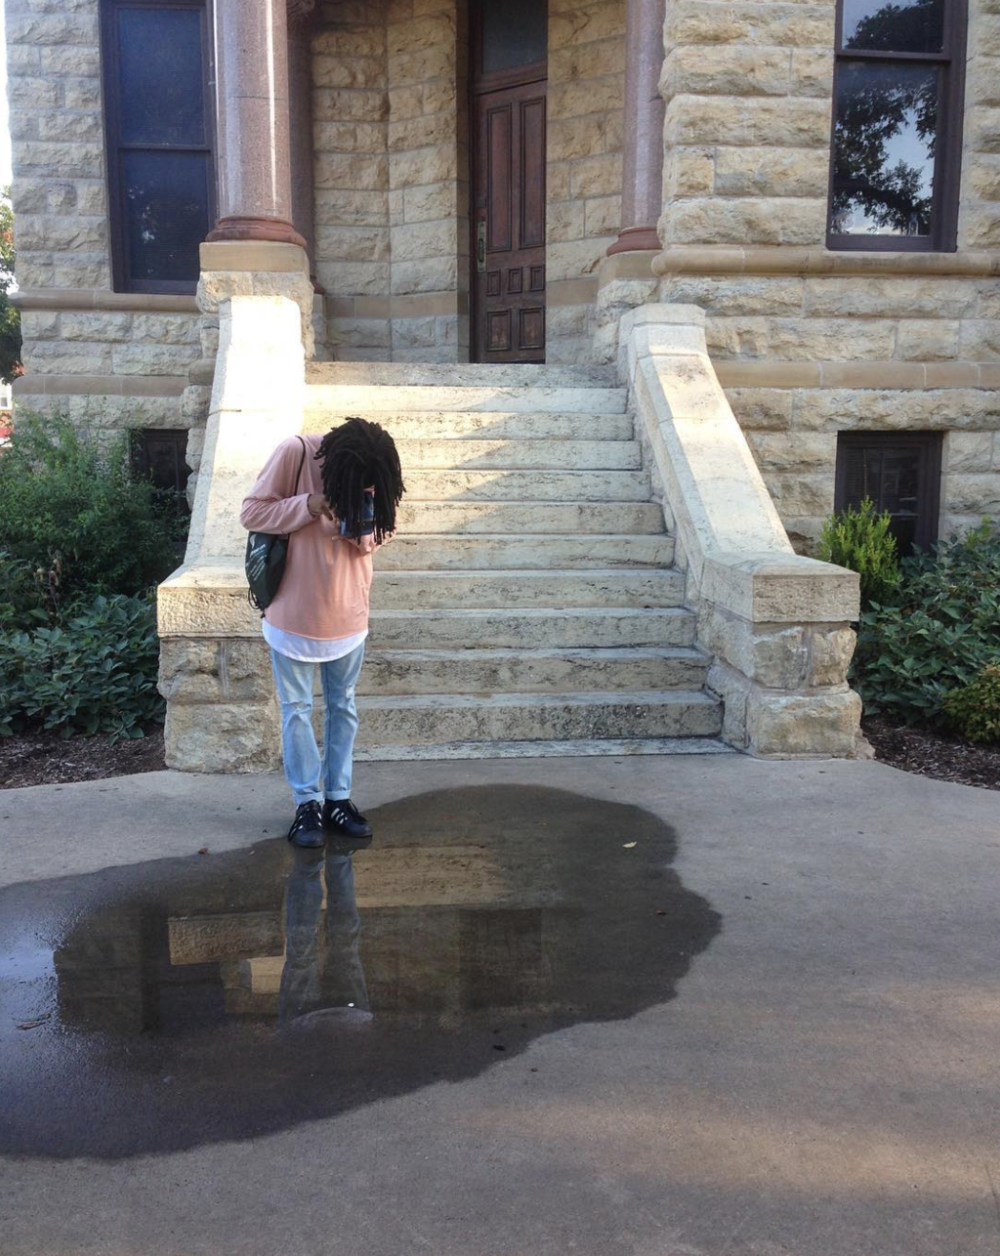 A great reflection photo in a puddle by @daderain.